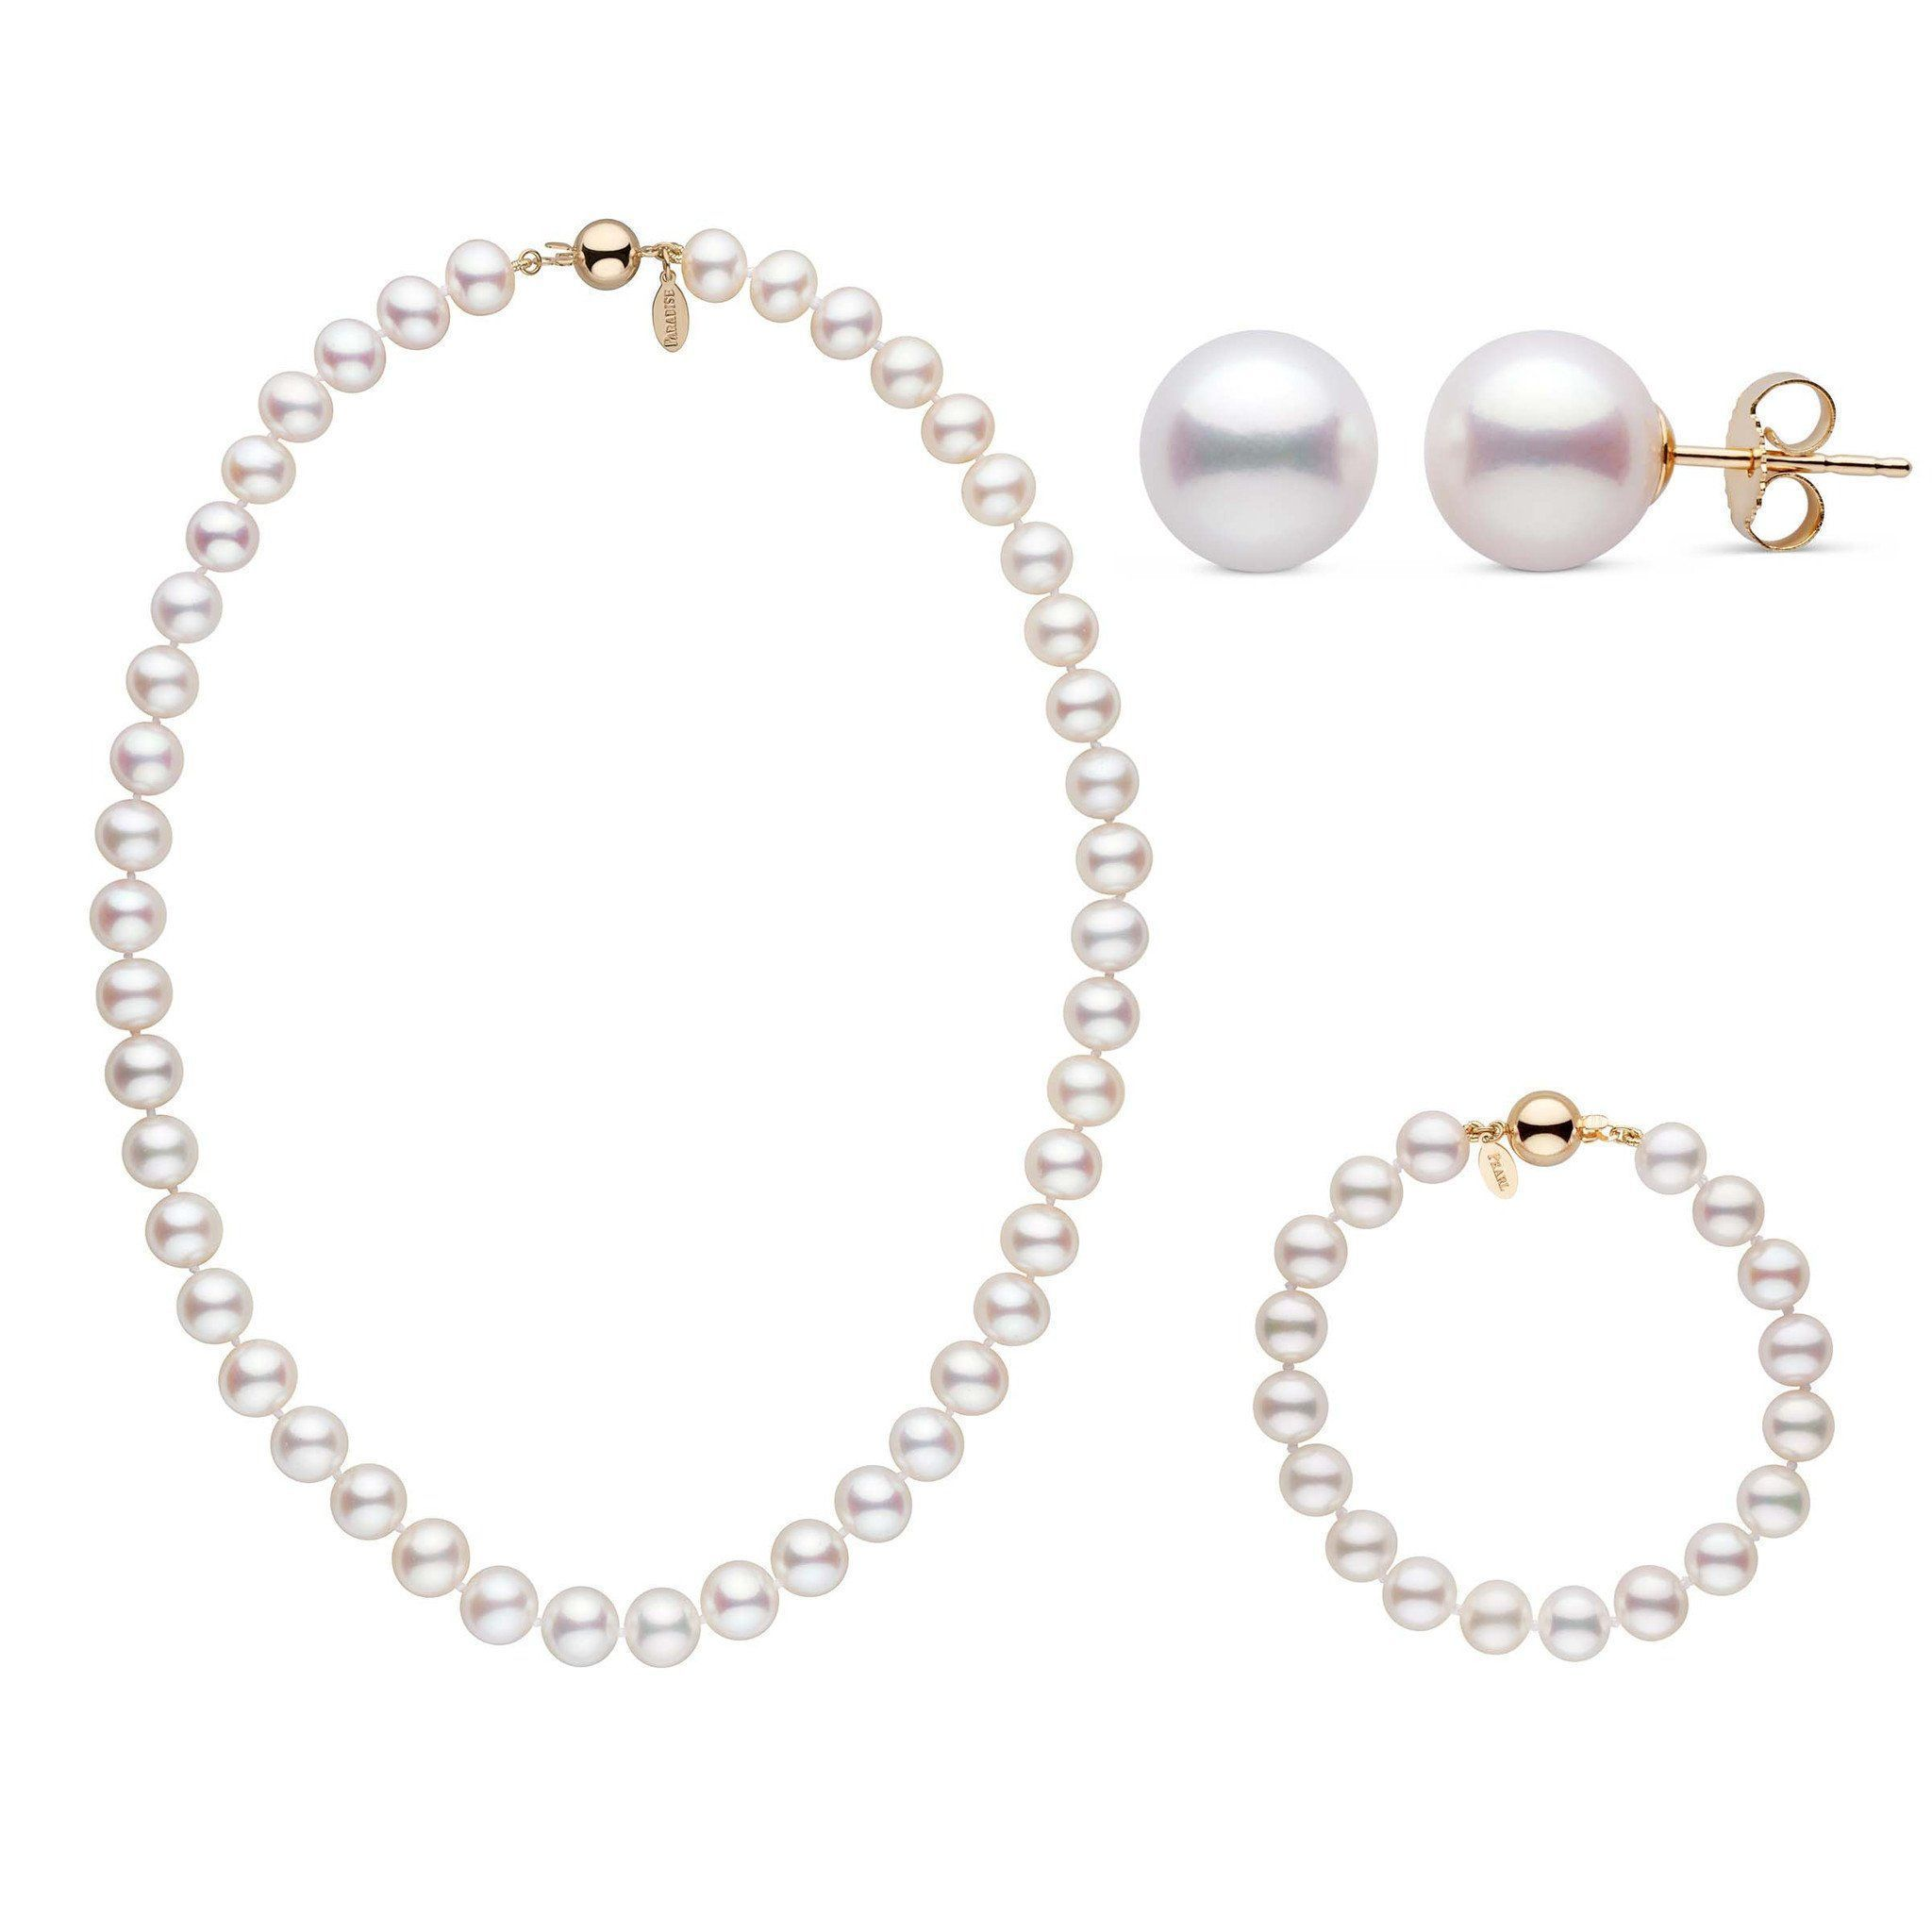 16 Inch 3 Piece 8.5-9.0 mm White Freshadama Freshwater Pearl Set